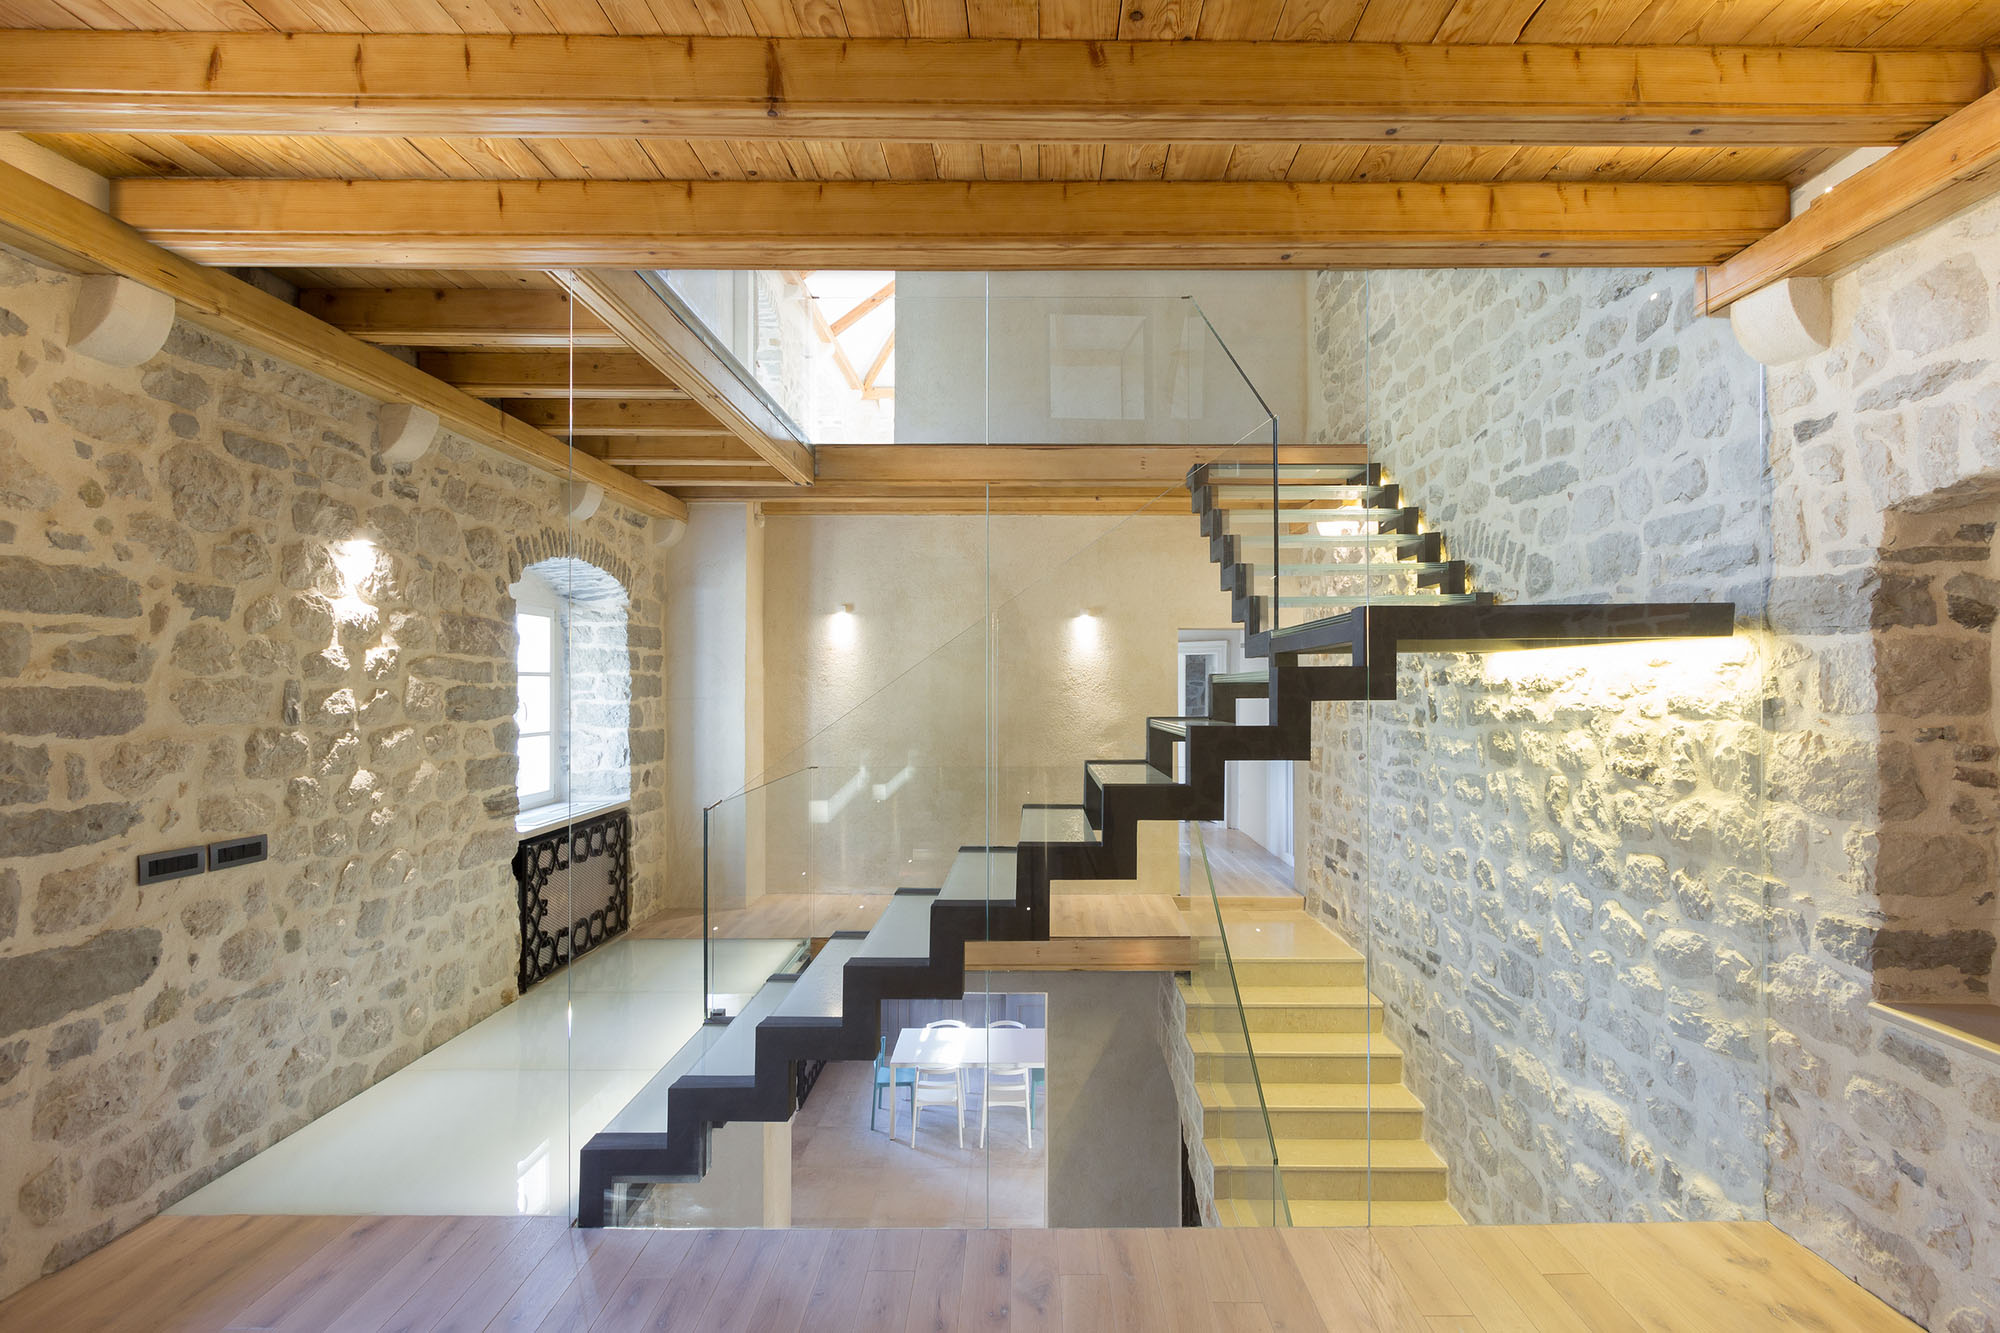 Rustic Stone Walls and Modern Glass Staircase